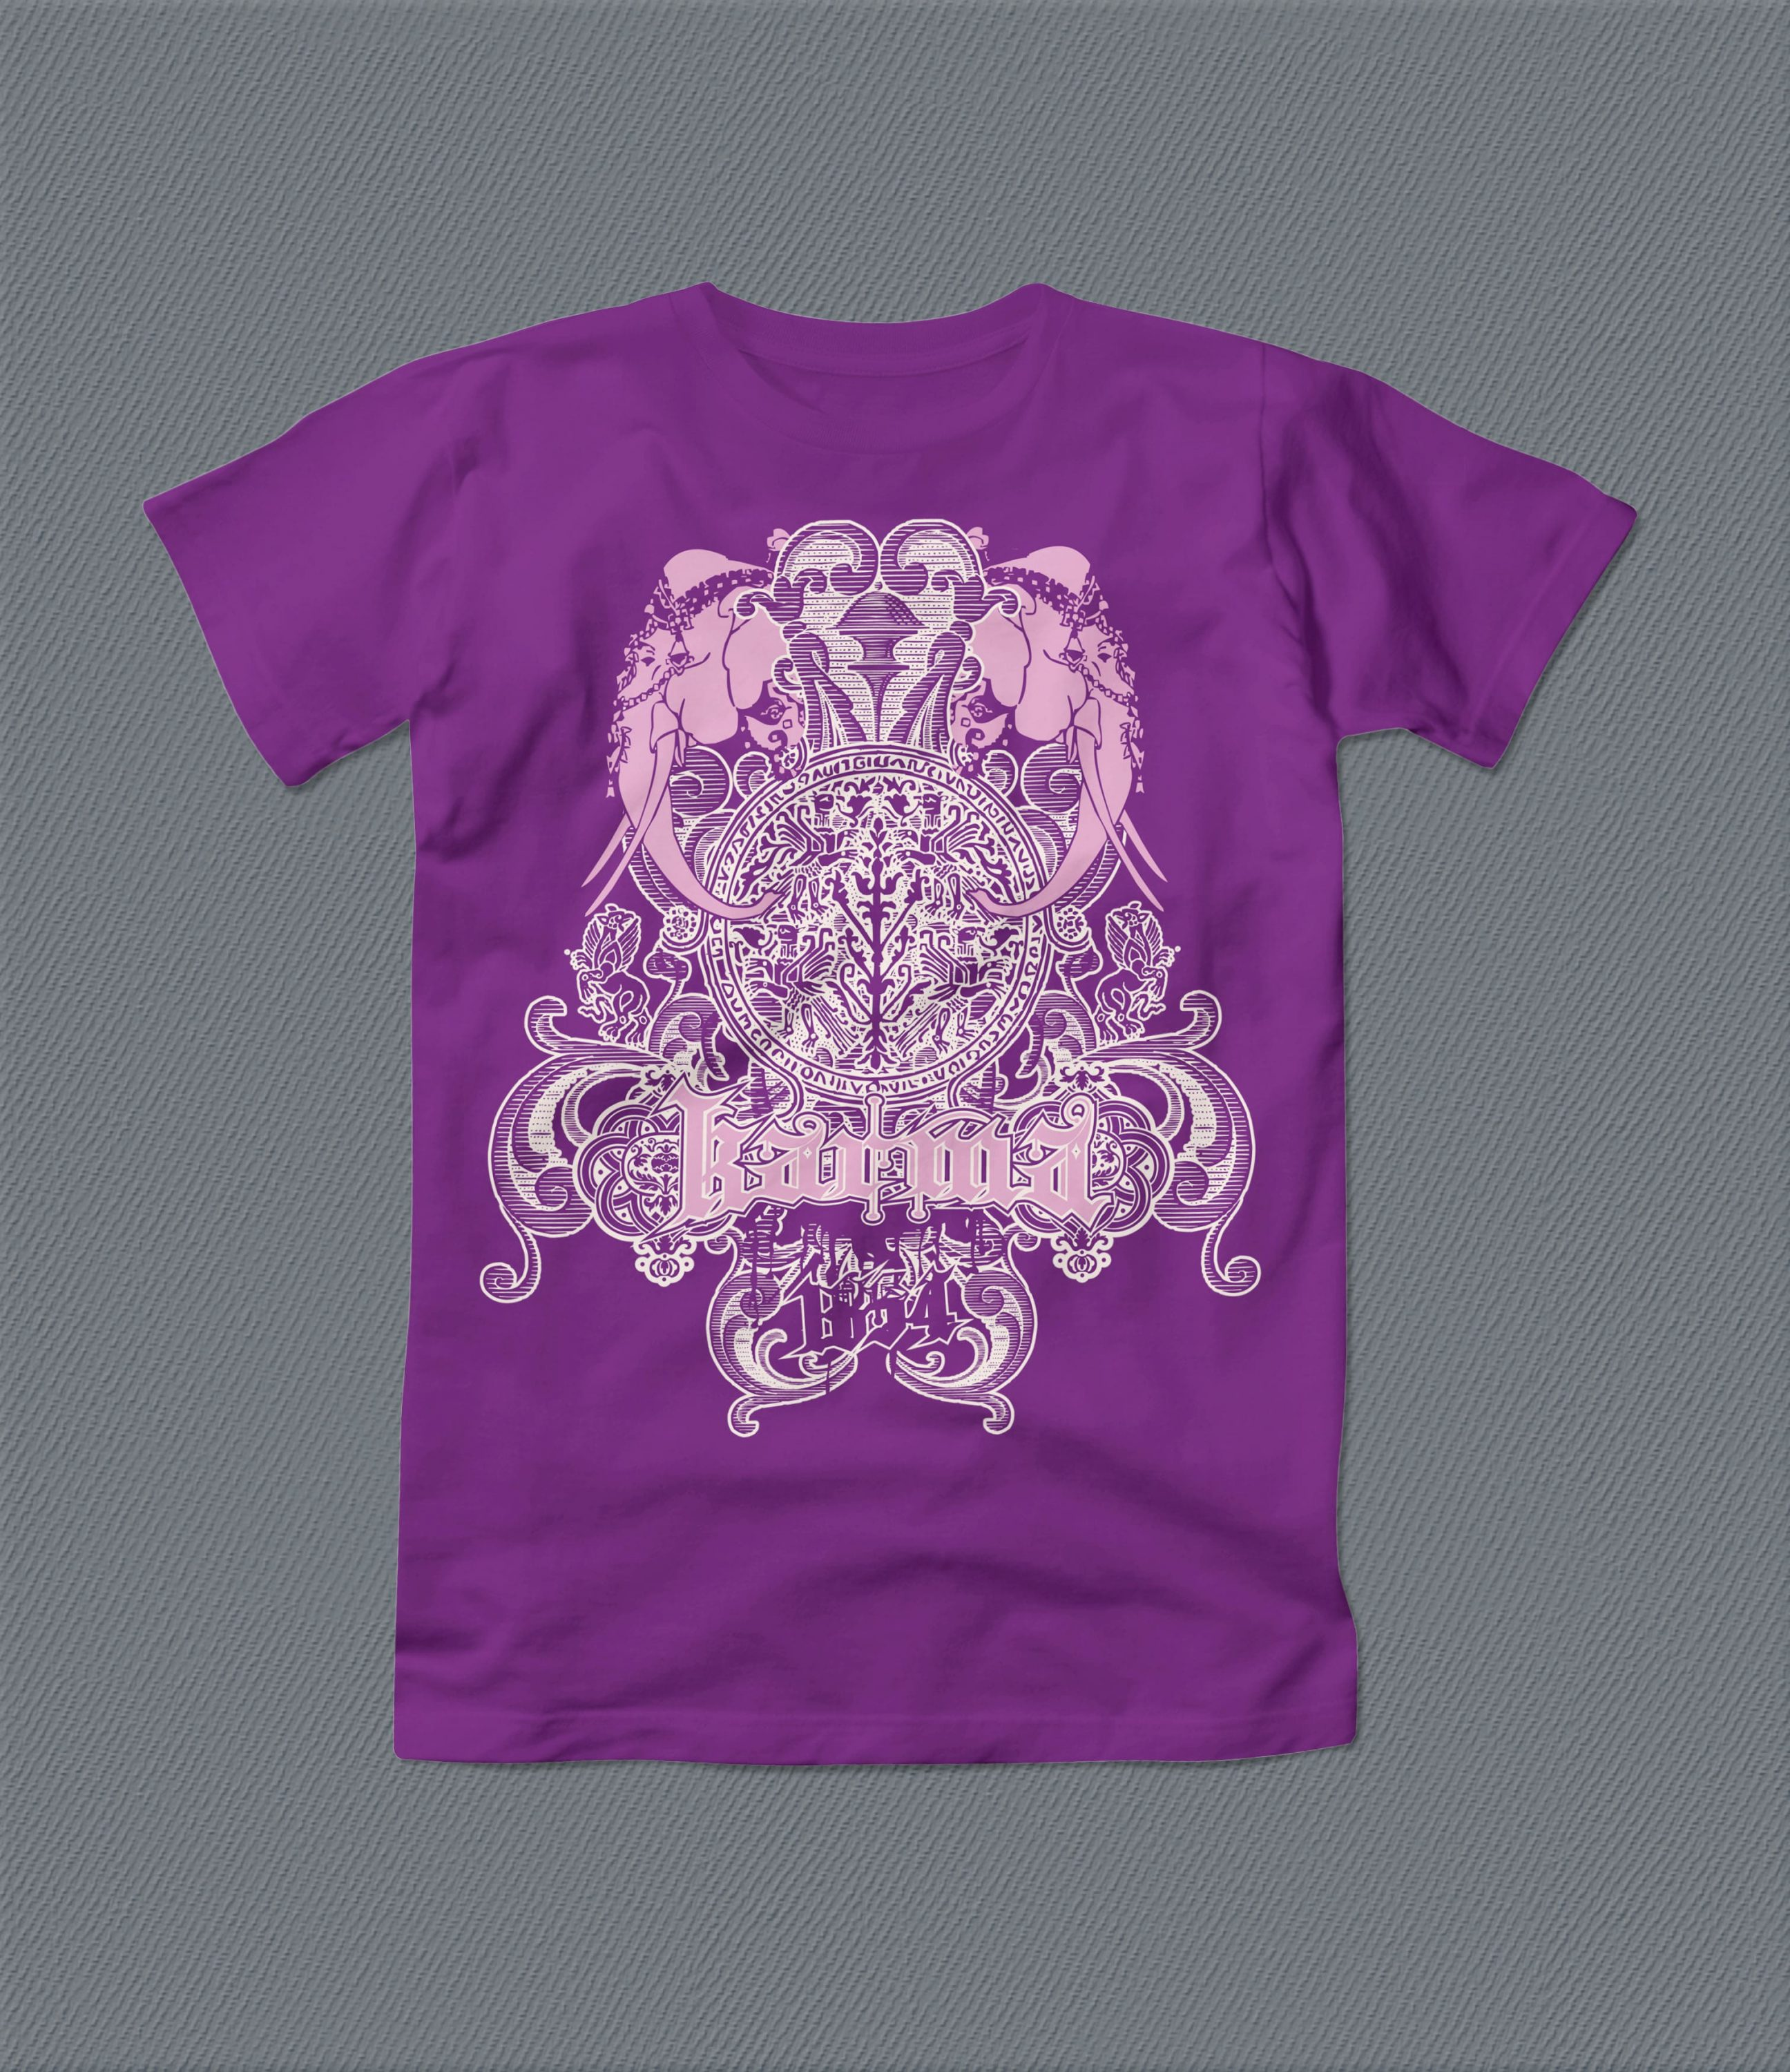 A purple t-shirt with mandlala and other magical ornaments.